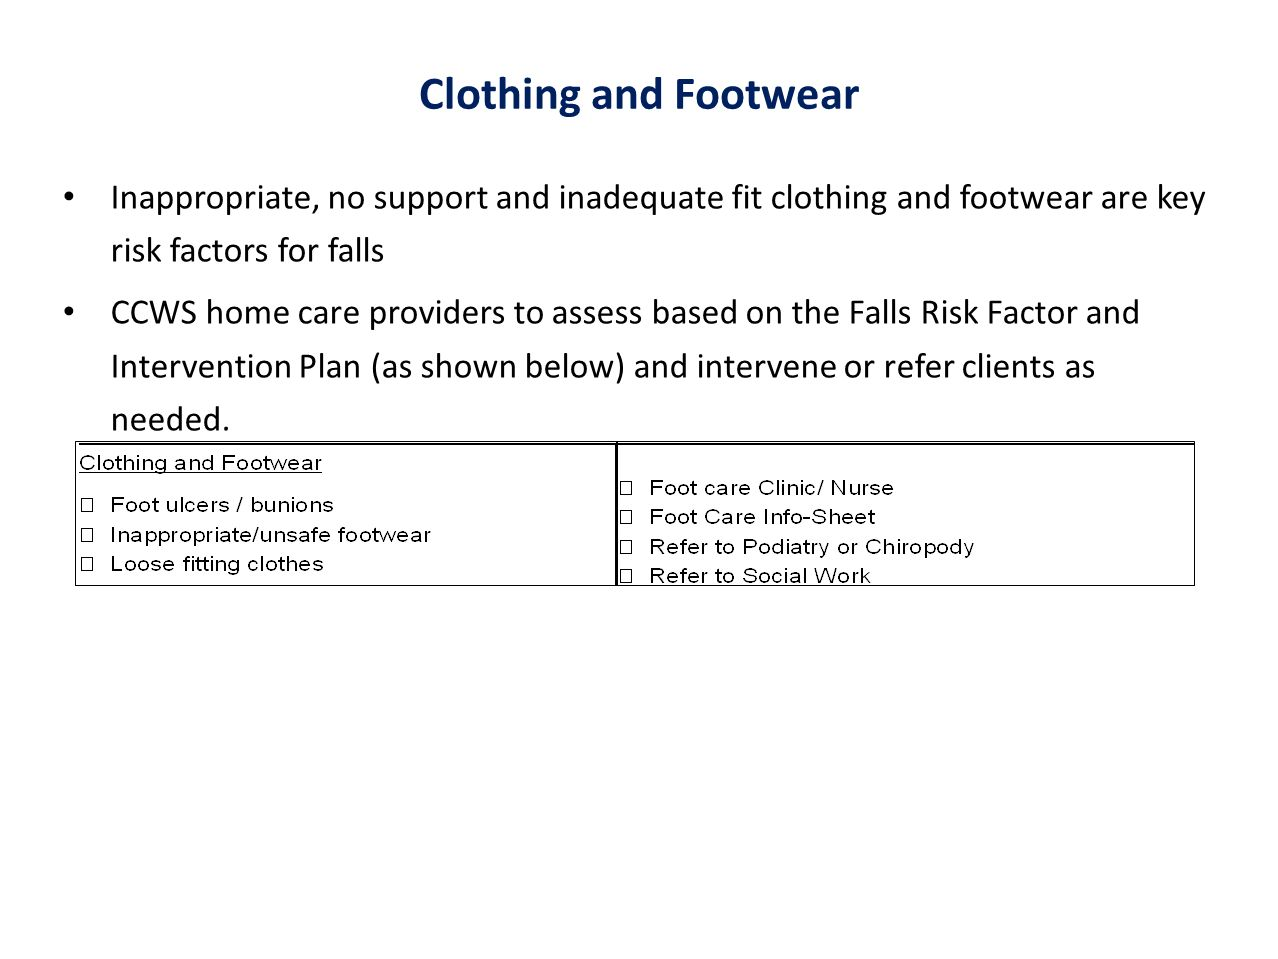 Clothing and Footwear Inappropriate, no support and inadequate fit clothing and footwear are key risk factors for falls.